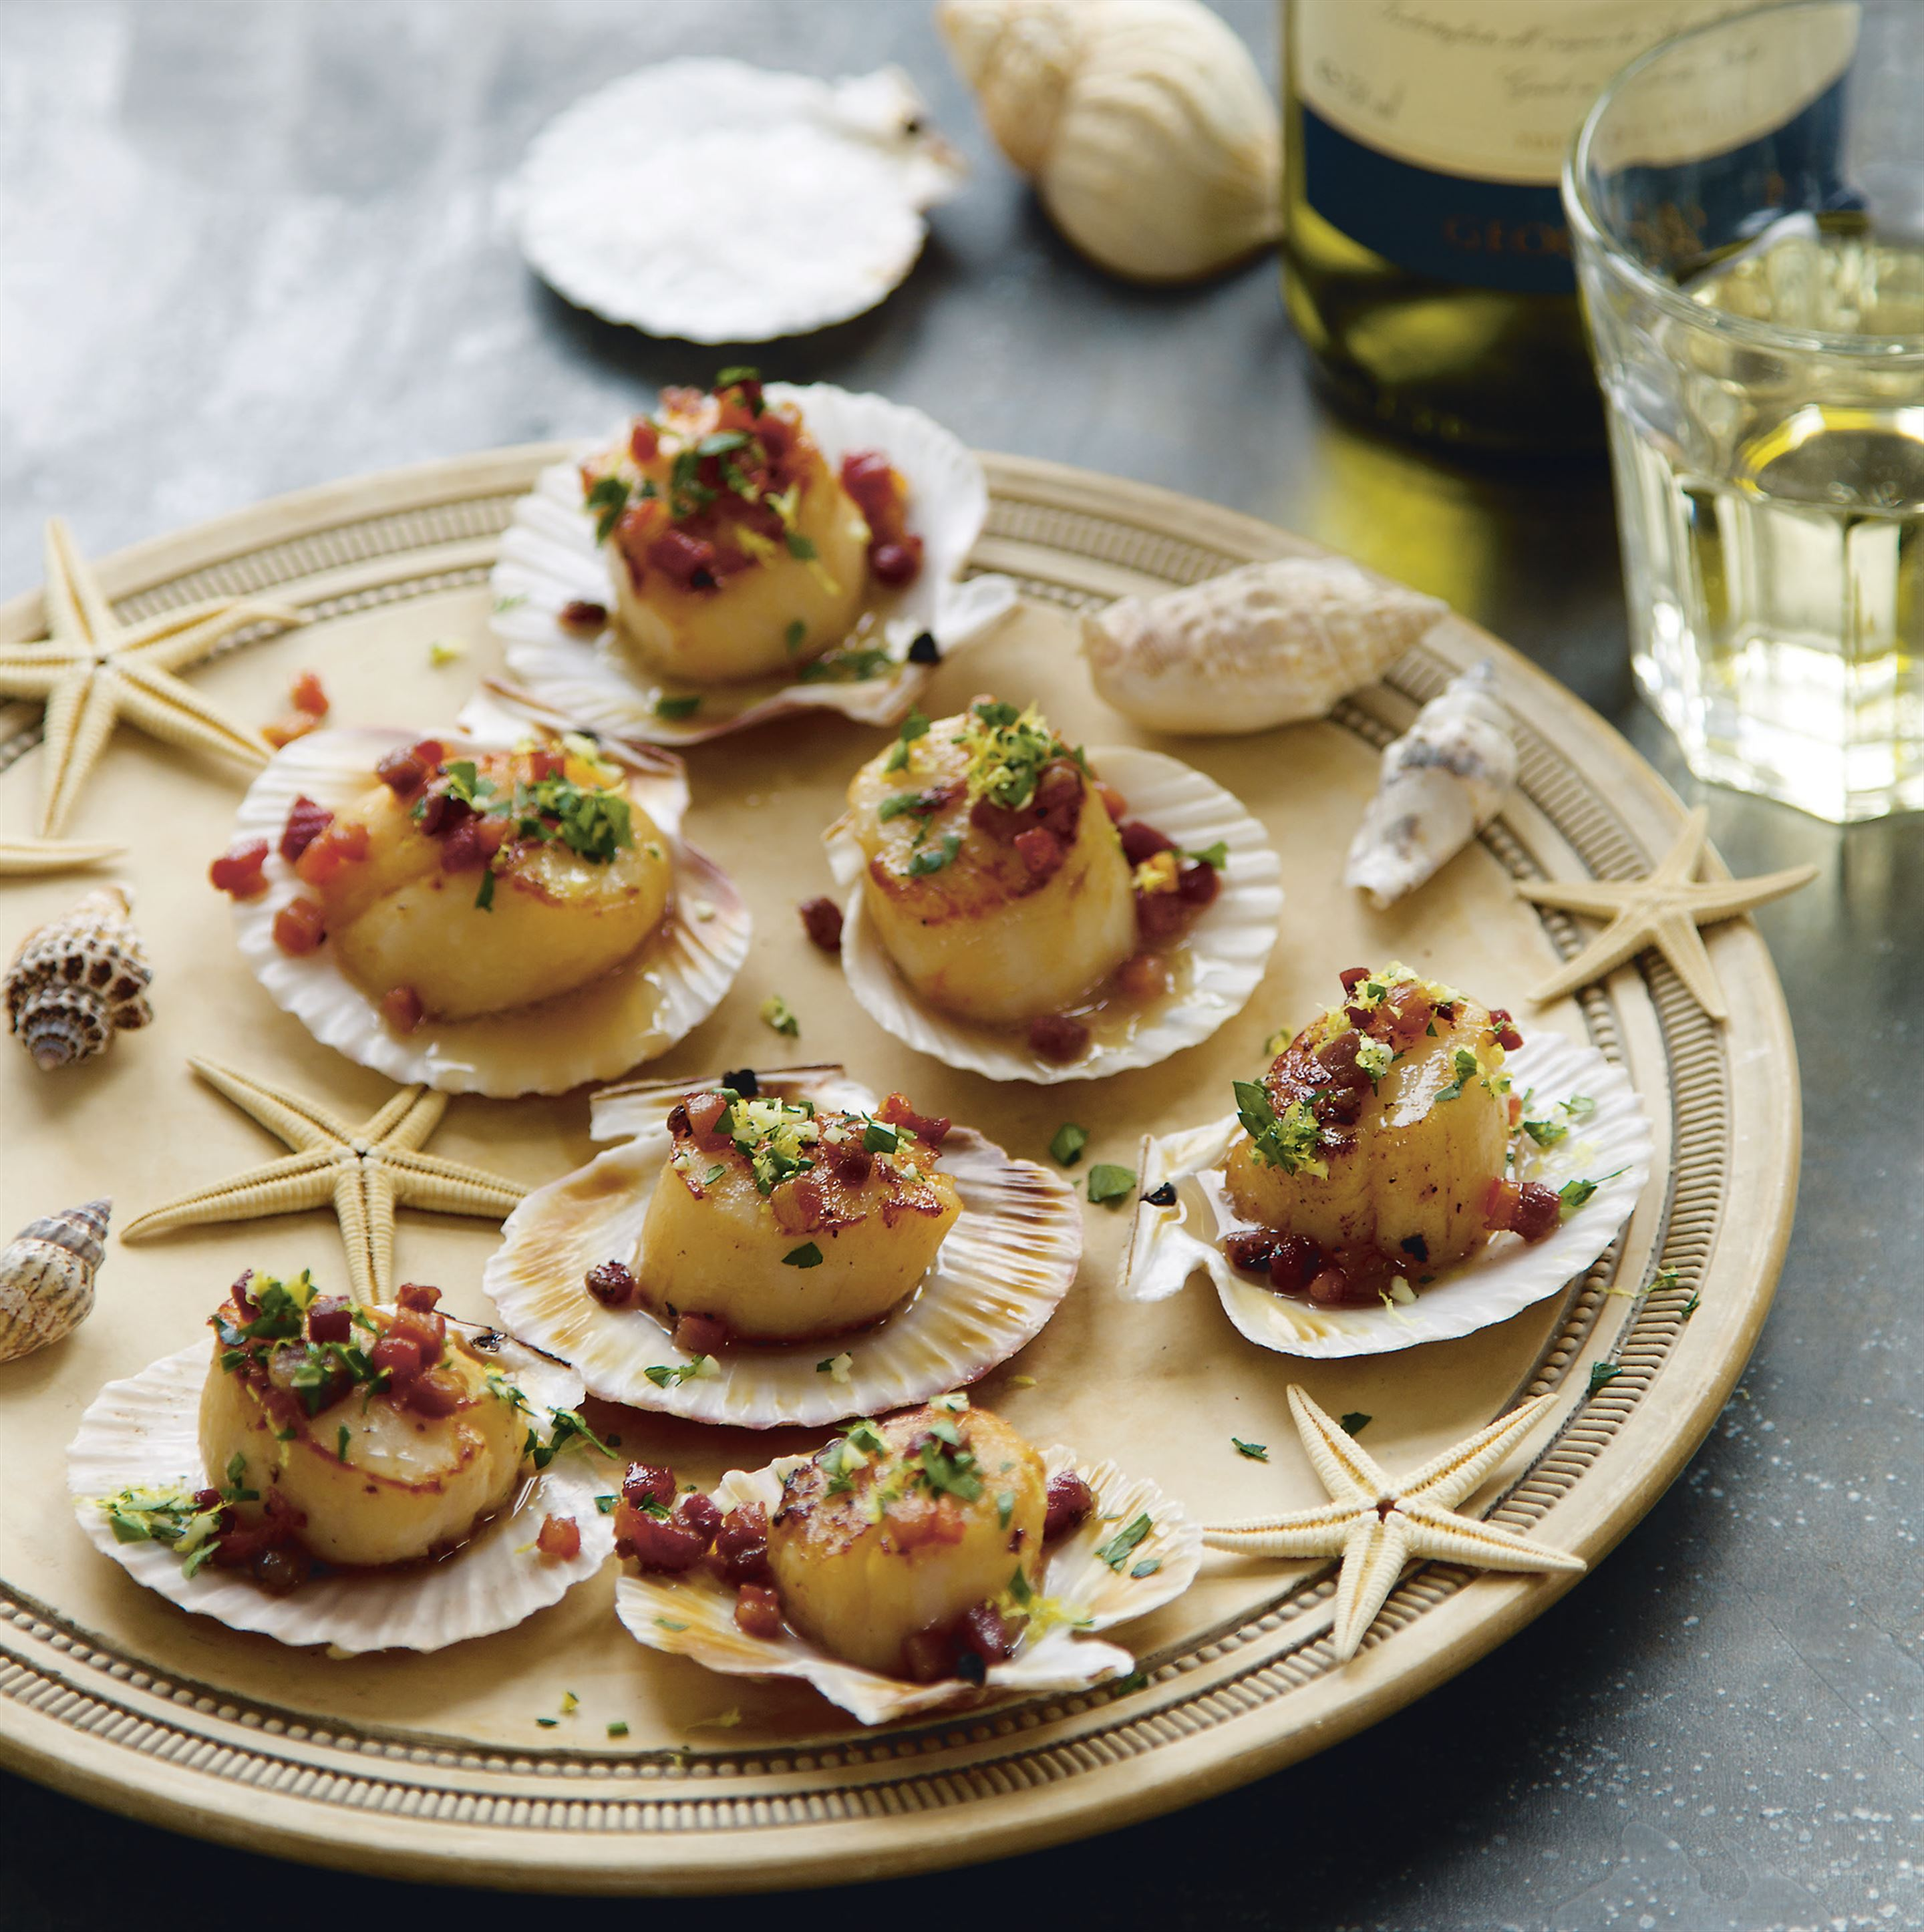 Scallops with crispy pancetta and gremolata